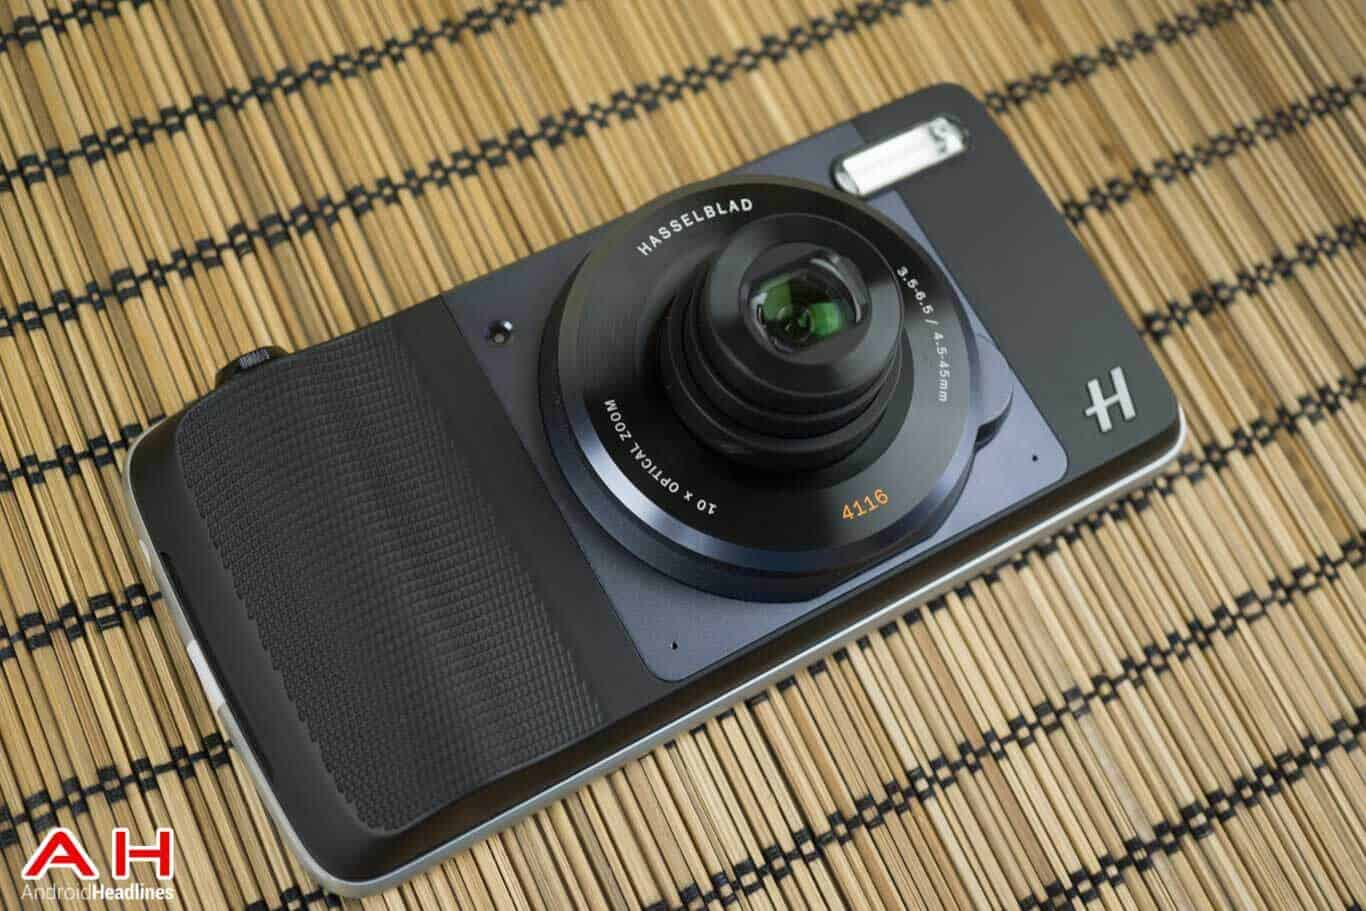 Hasselblad Camera Moto Mod Review AM AH 3